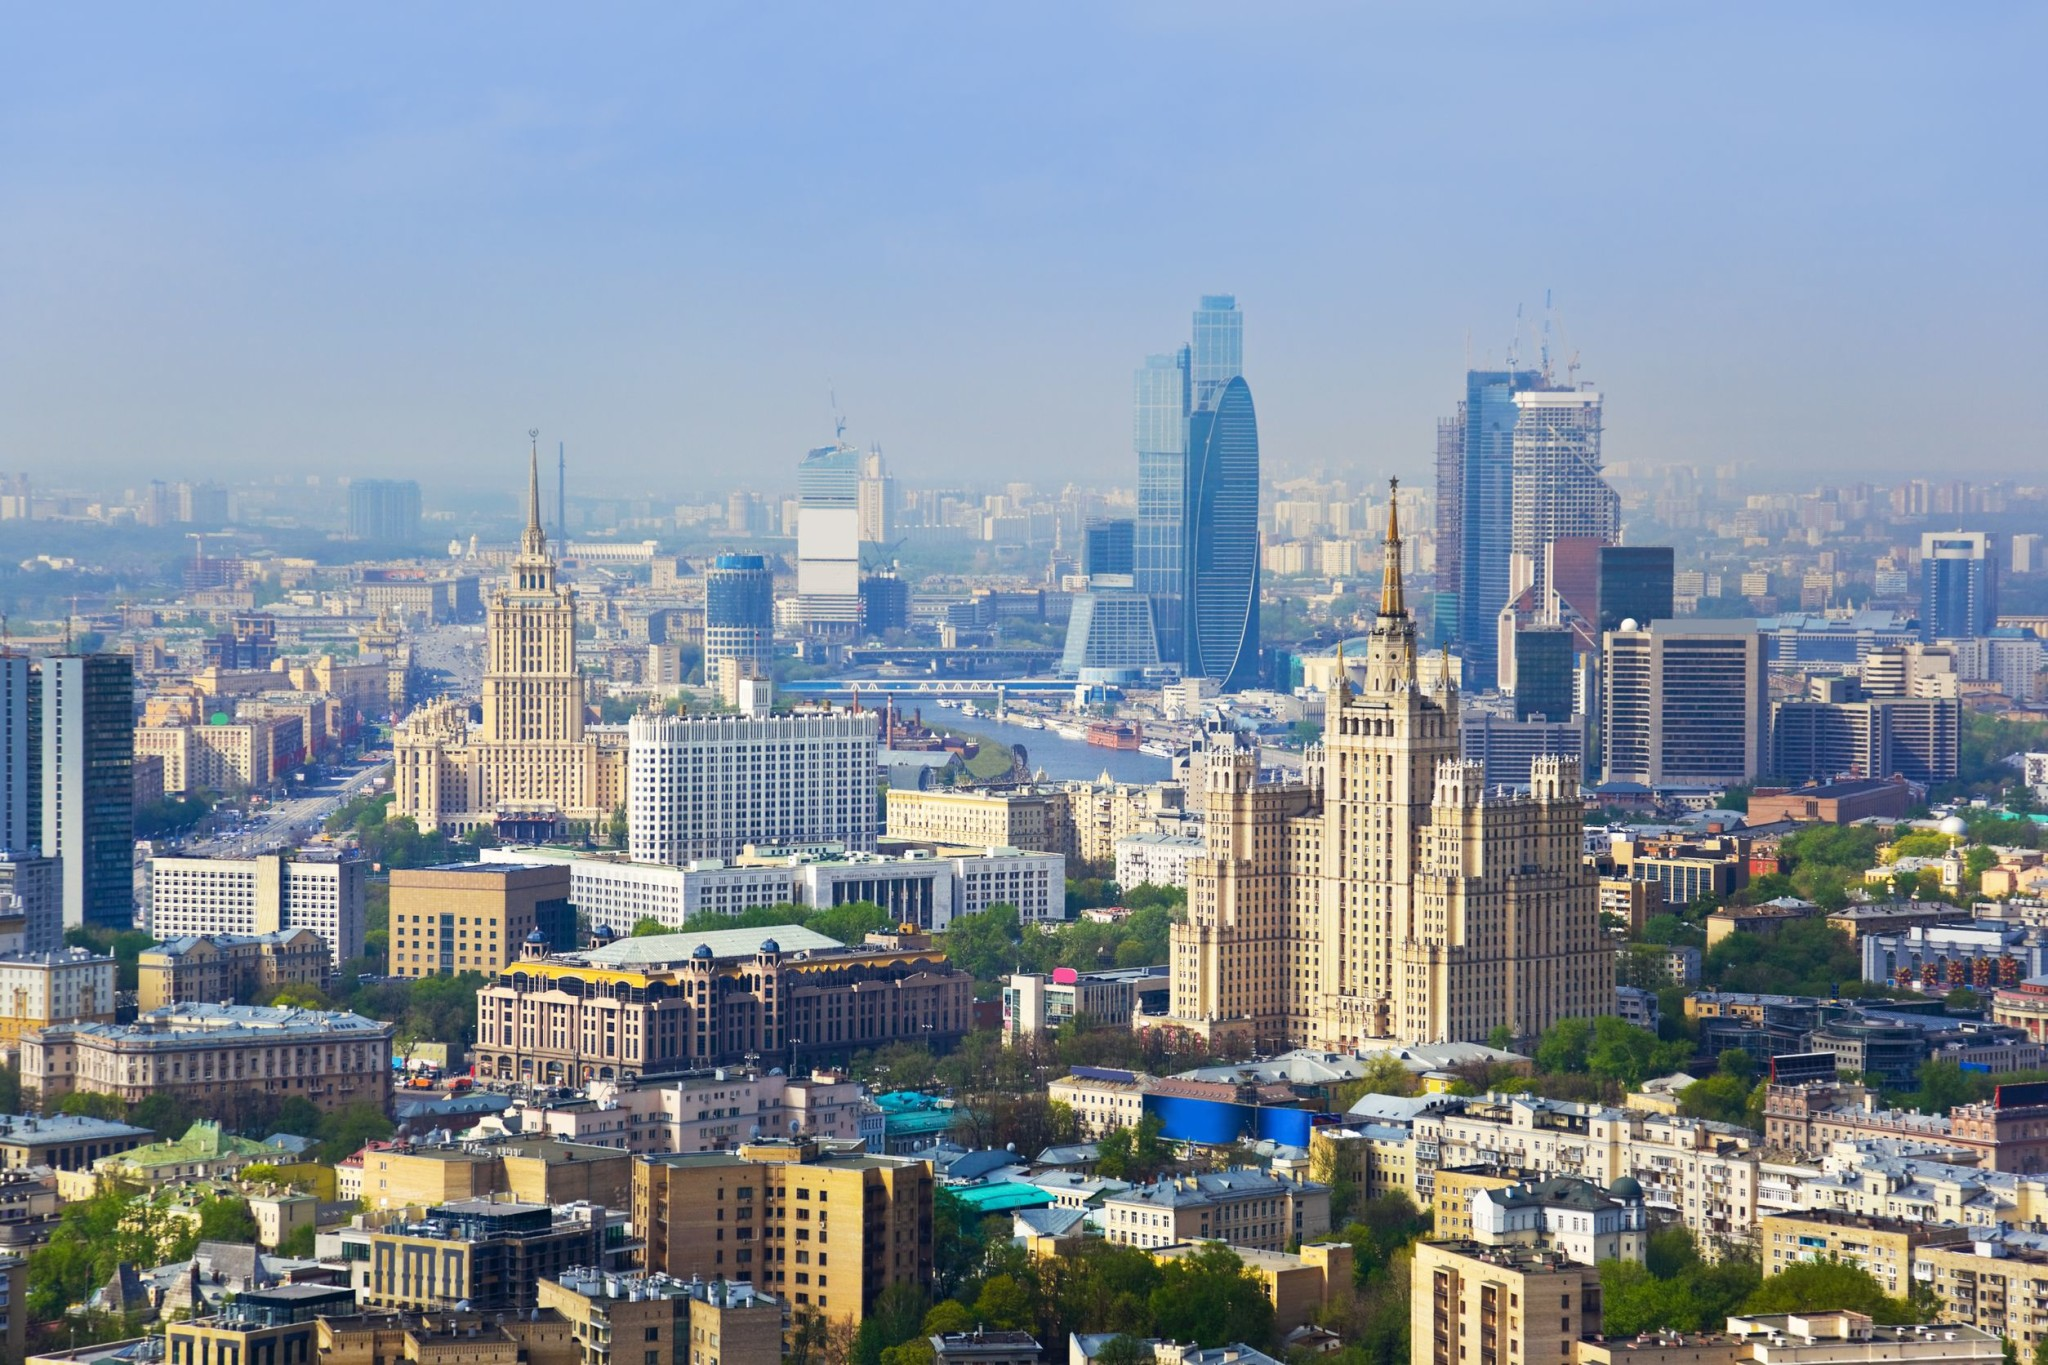 Moscow city center, Russia